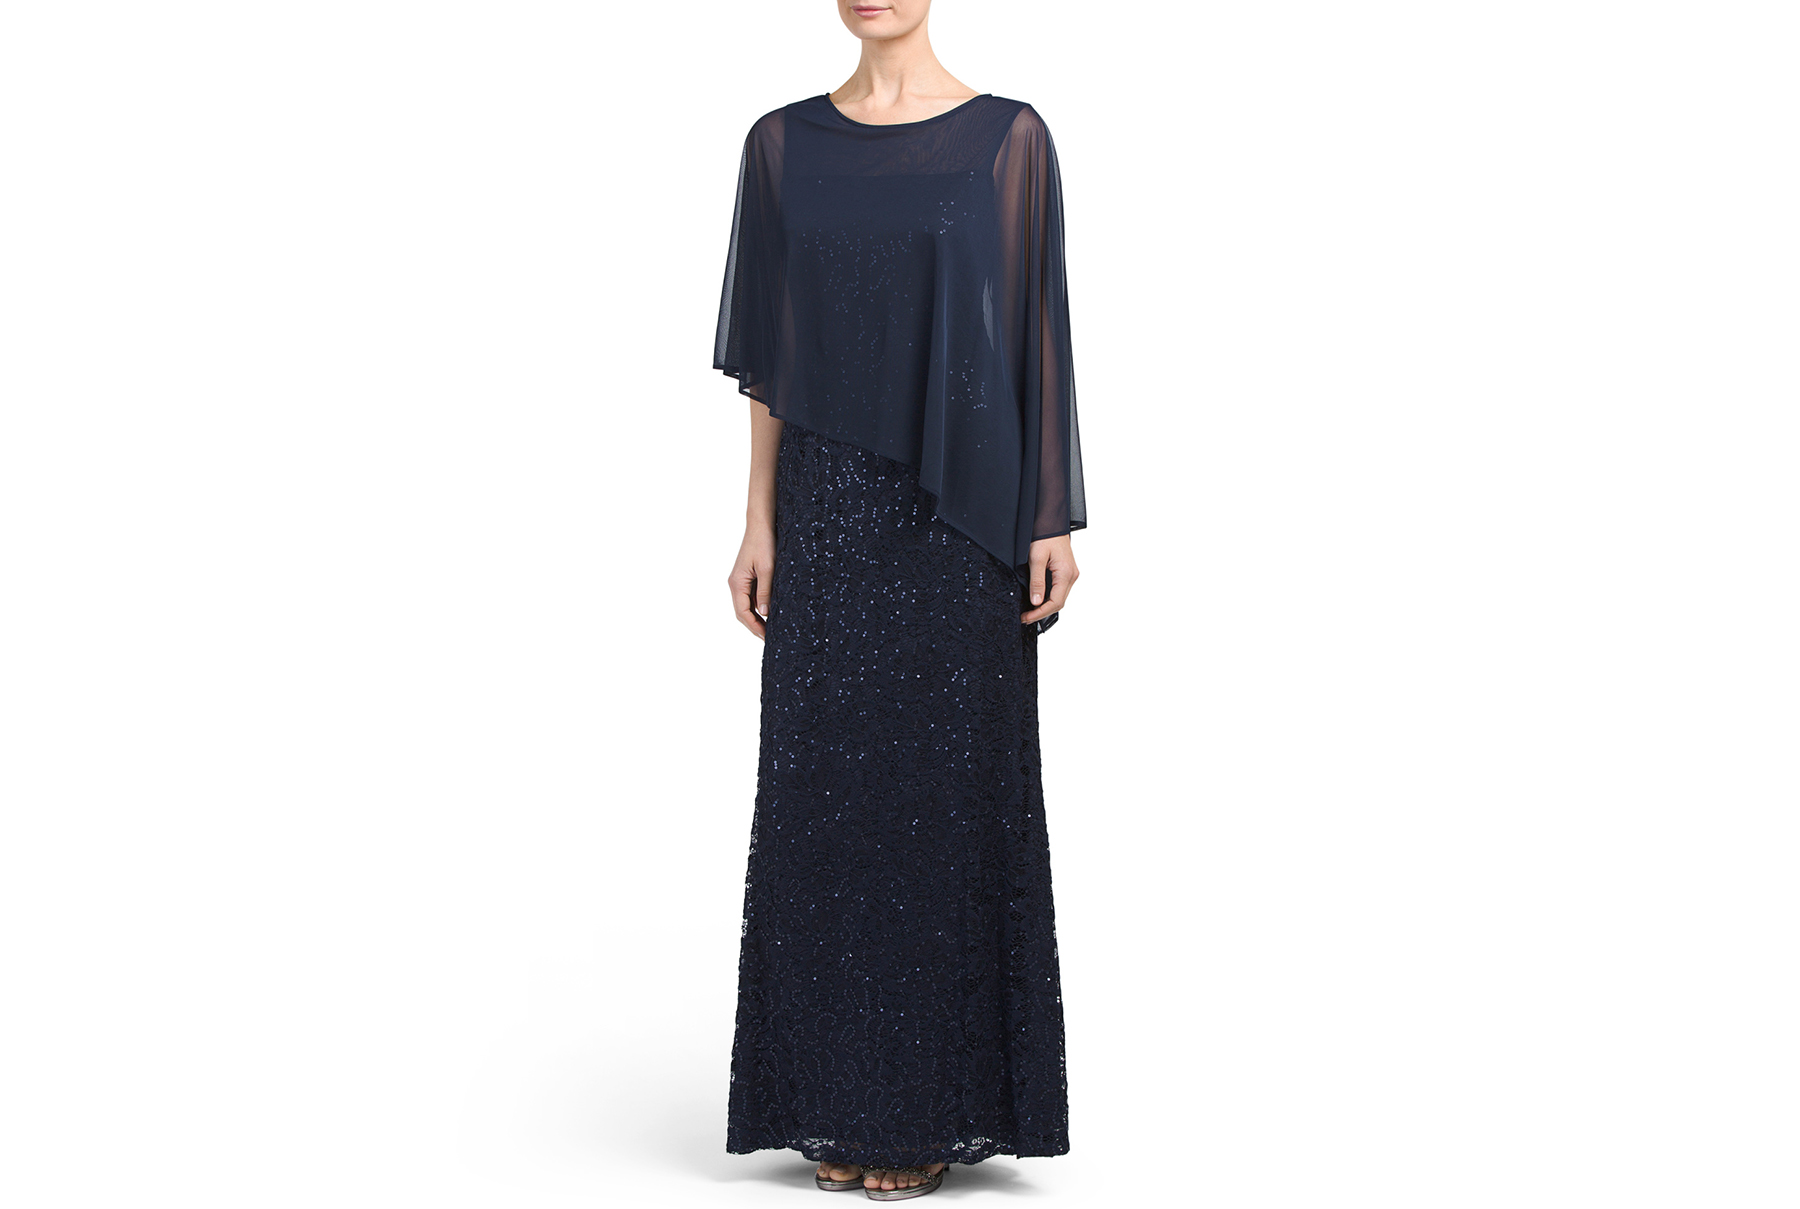 Onyx Nite Long Sequin Lace Illusion Gown